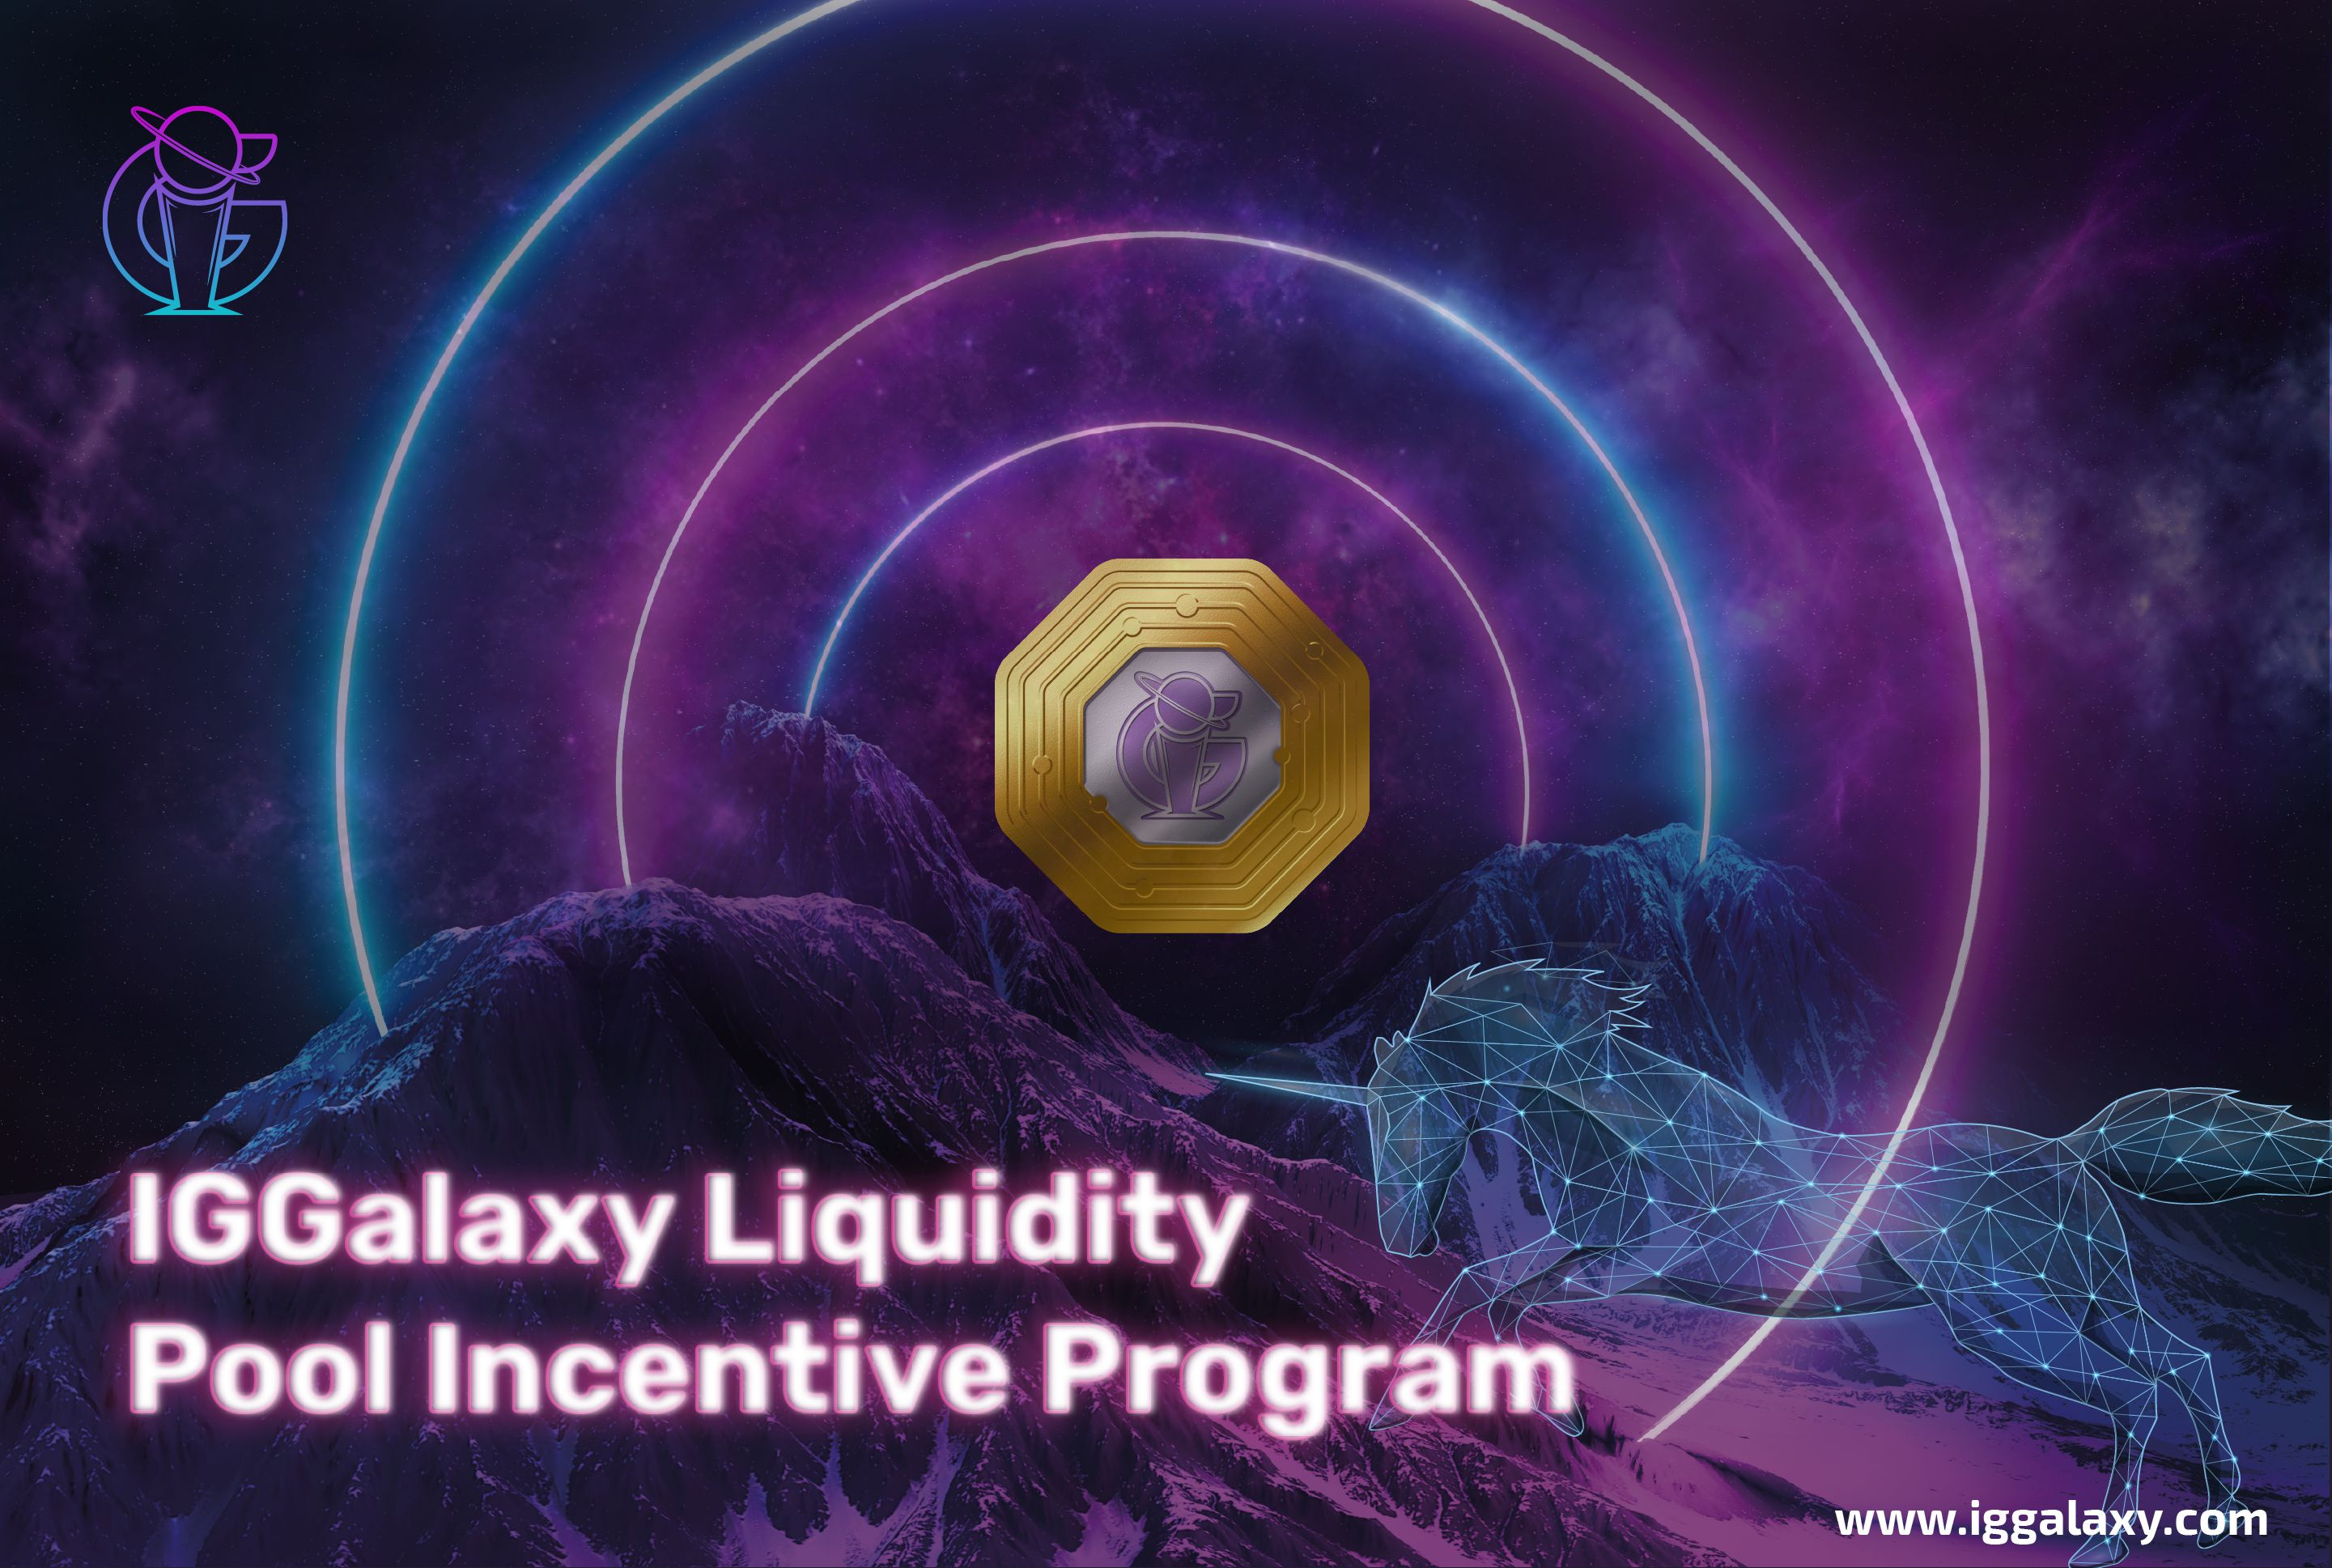 IGGalaxy's UniSwap Liquidity Pool Incentive Program Launched!